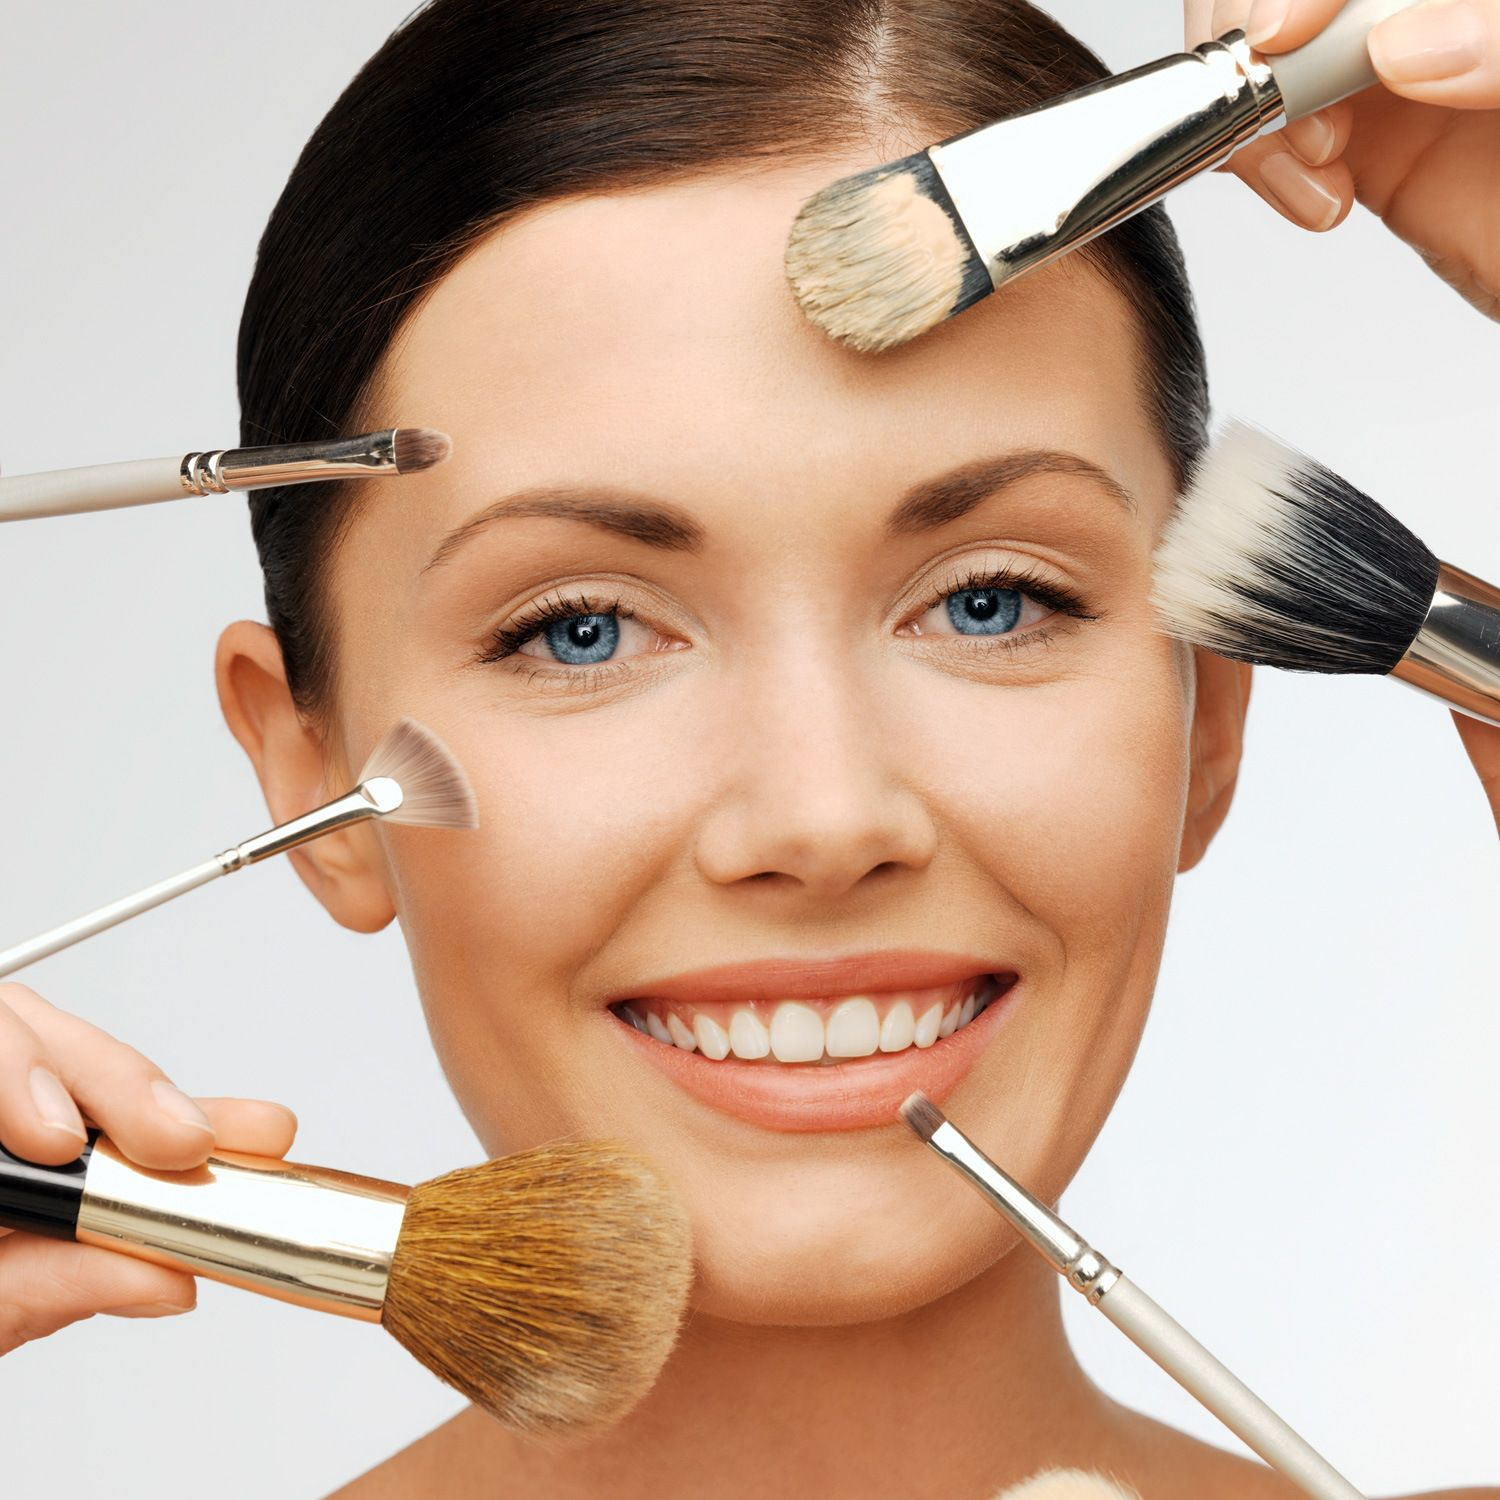 Correct Skin Care for Flawless Makeup Application Health